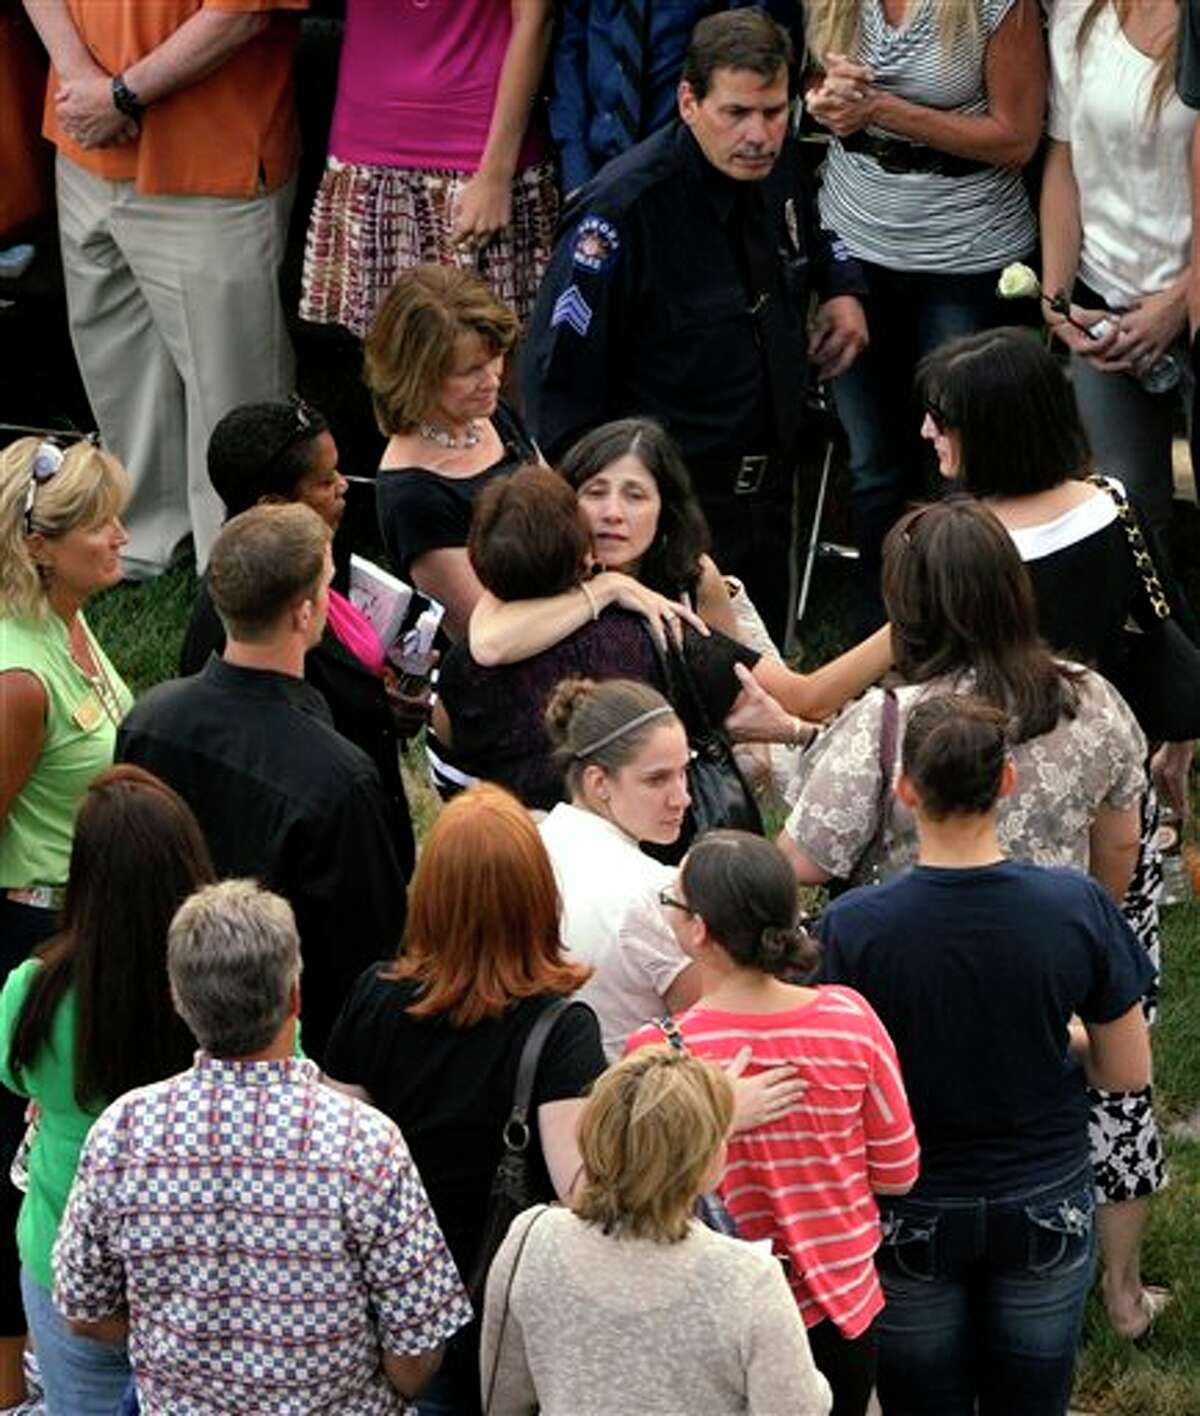 """In this overview, families gather for a prayer vigil honoring the victims of Friday's mass shooting at a movie theater, Sunday, July 22, 2012, at the Aurora Municipal Center campus in Aurora, Colo. Twelve people were killed and dozens were injured in a shooting attack early Friday at the packed theater during a showing of the Batman movie, """"The Dark Knight Rises."""" Police have identified the suspected shooter as James Holmes, 24. (AP Photo/The Denver Post, Joe Amon, Pool)"""